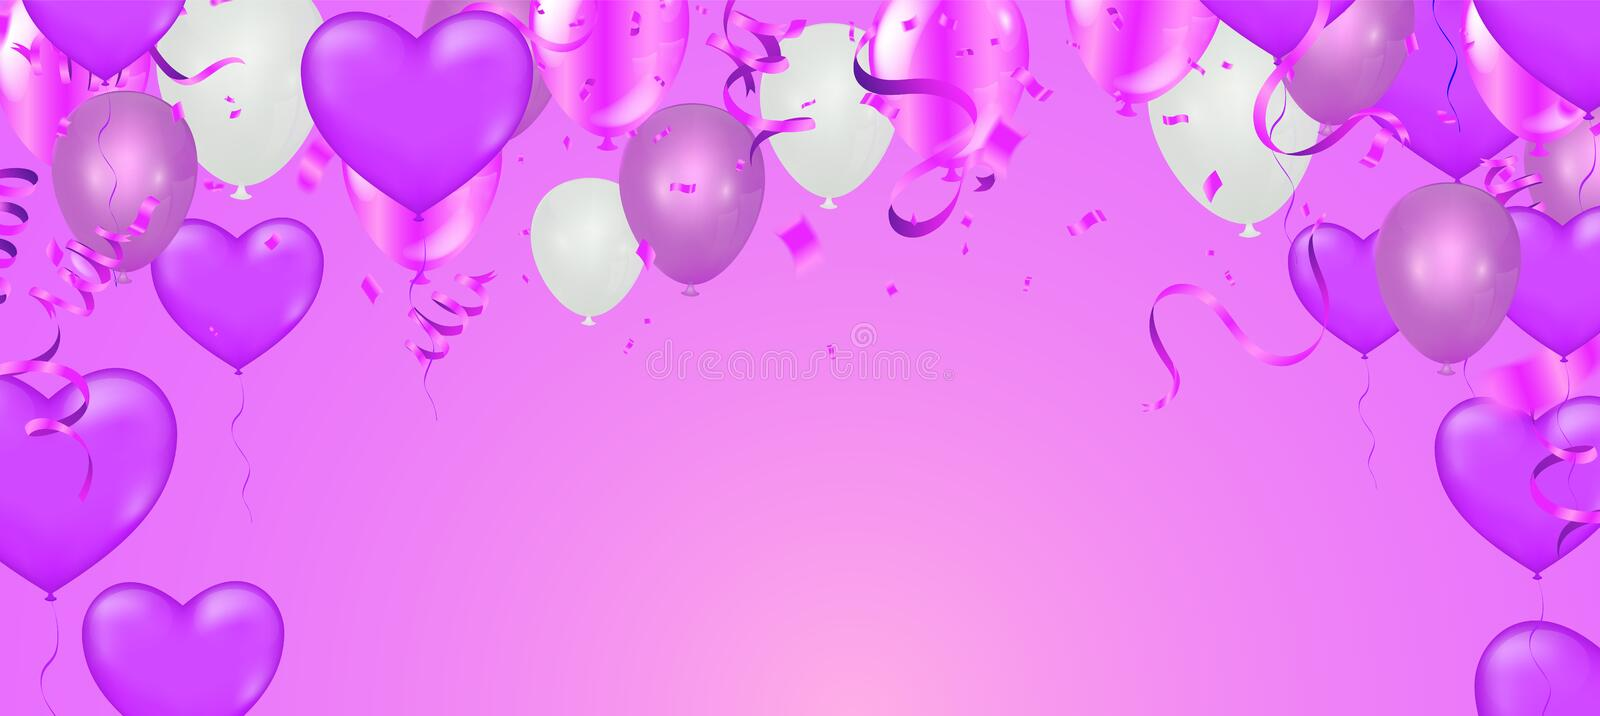 Happy Birthday Greeting Card with balloons on abstract background with light effect. Eps.10 vector illustration